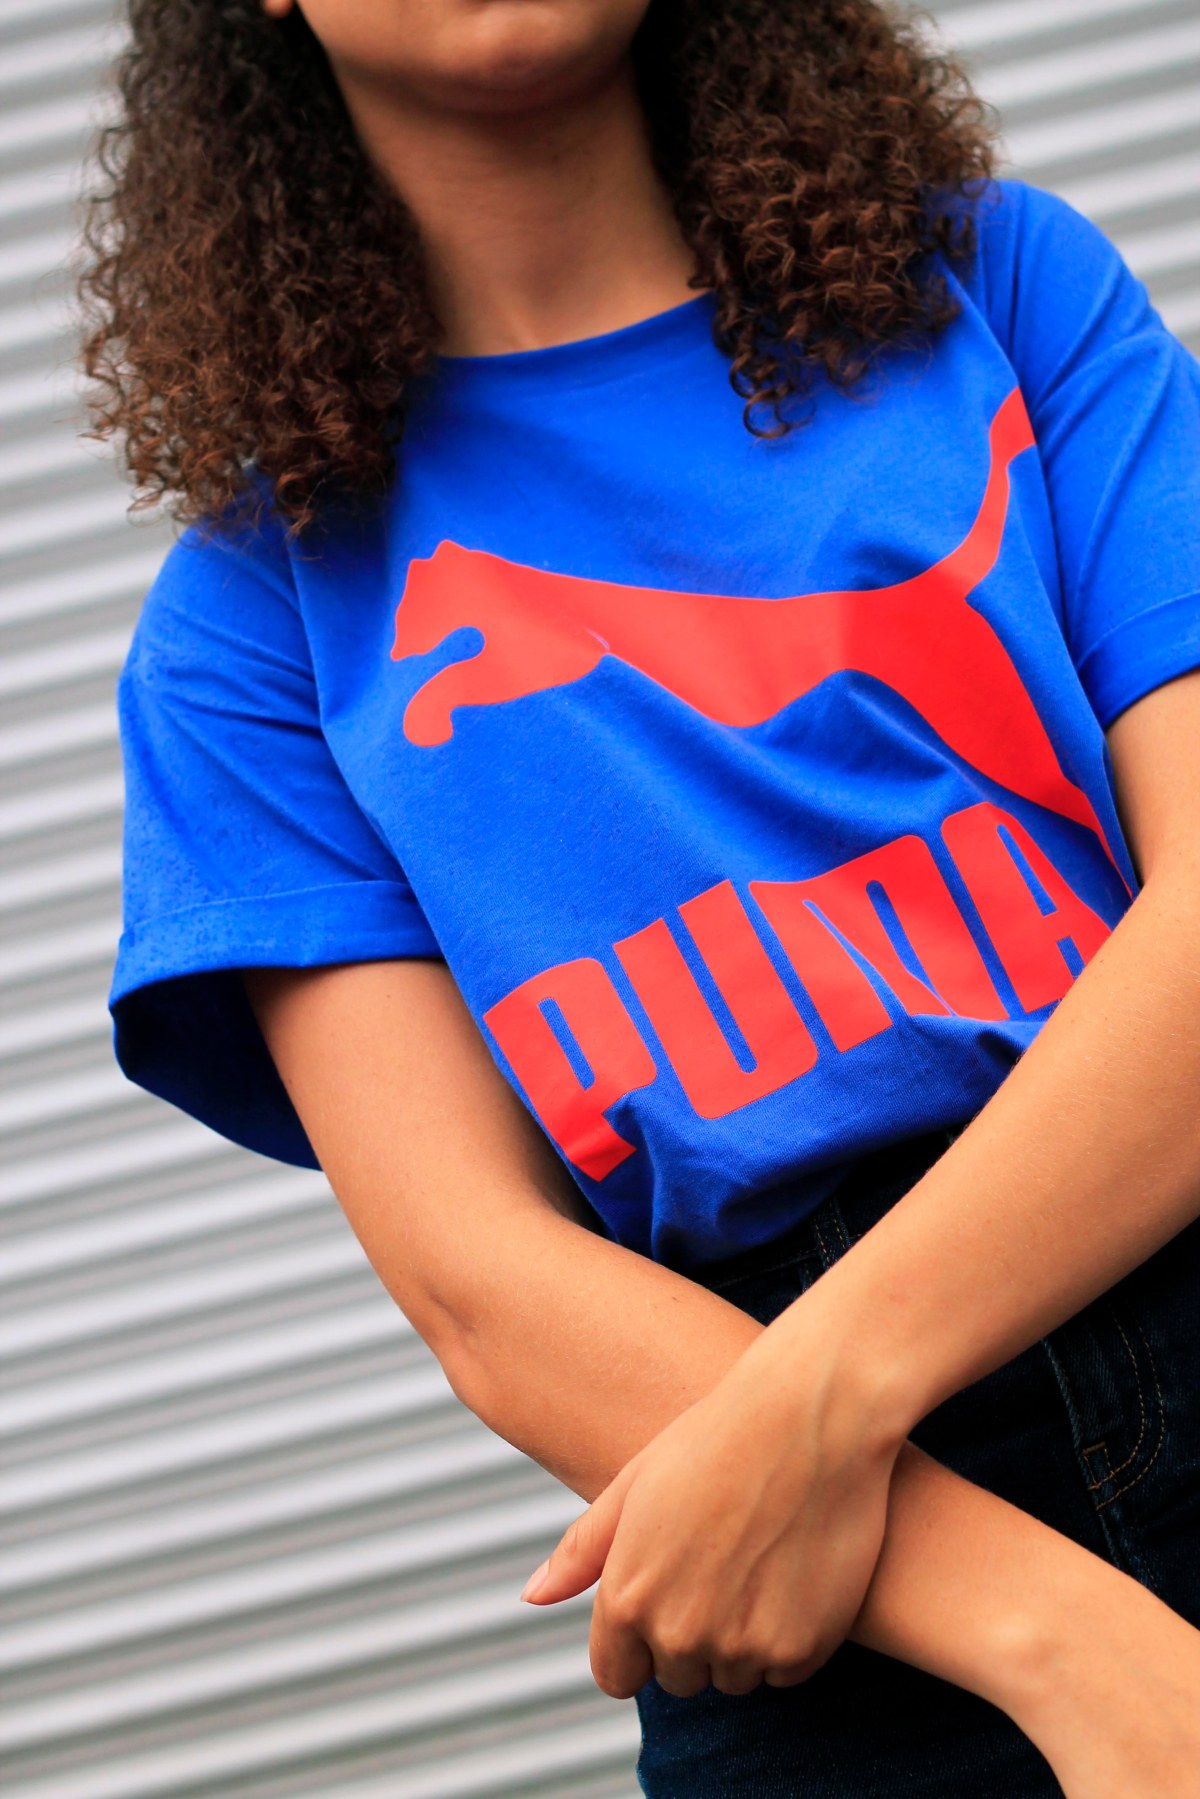 uk curly hair blogger - retro puma tshirt 2